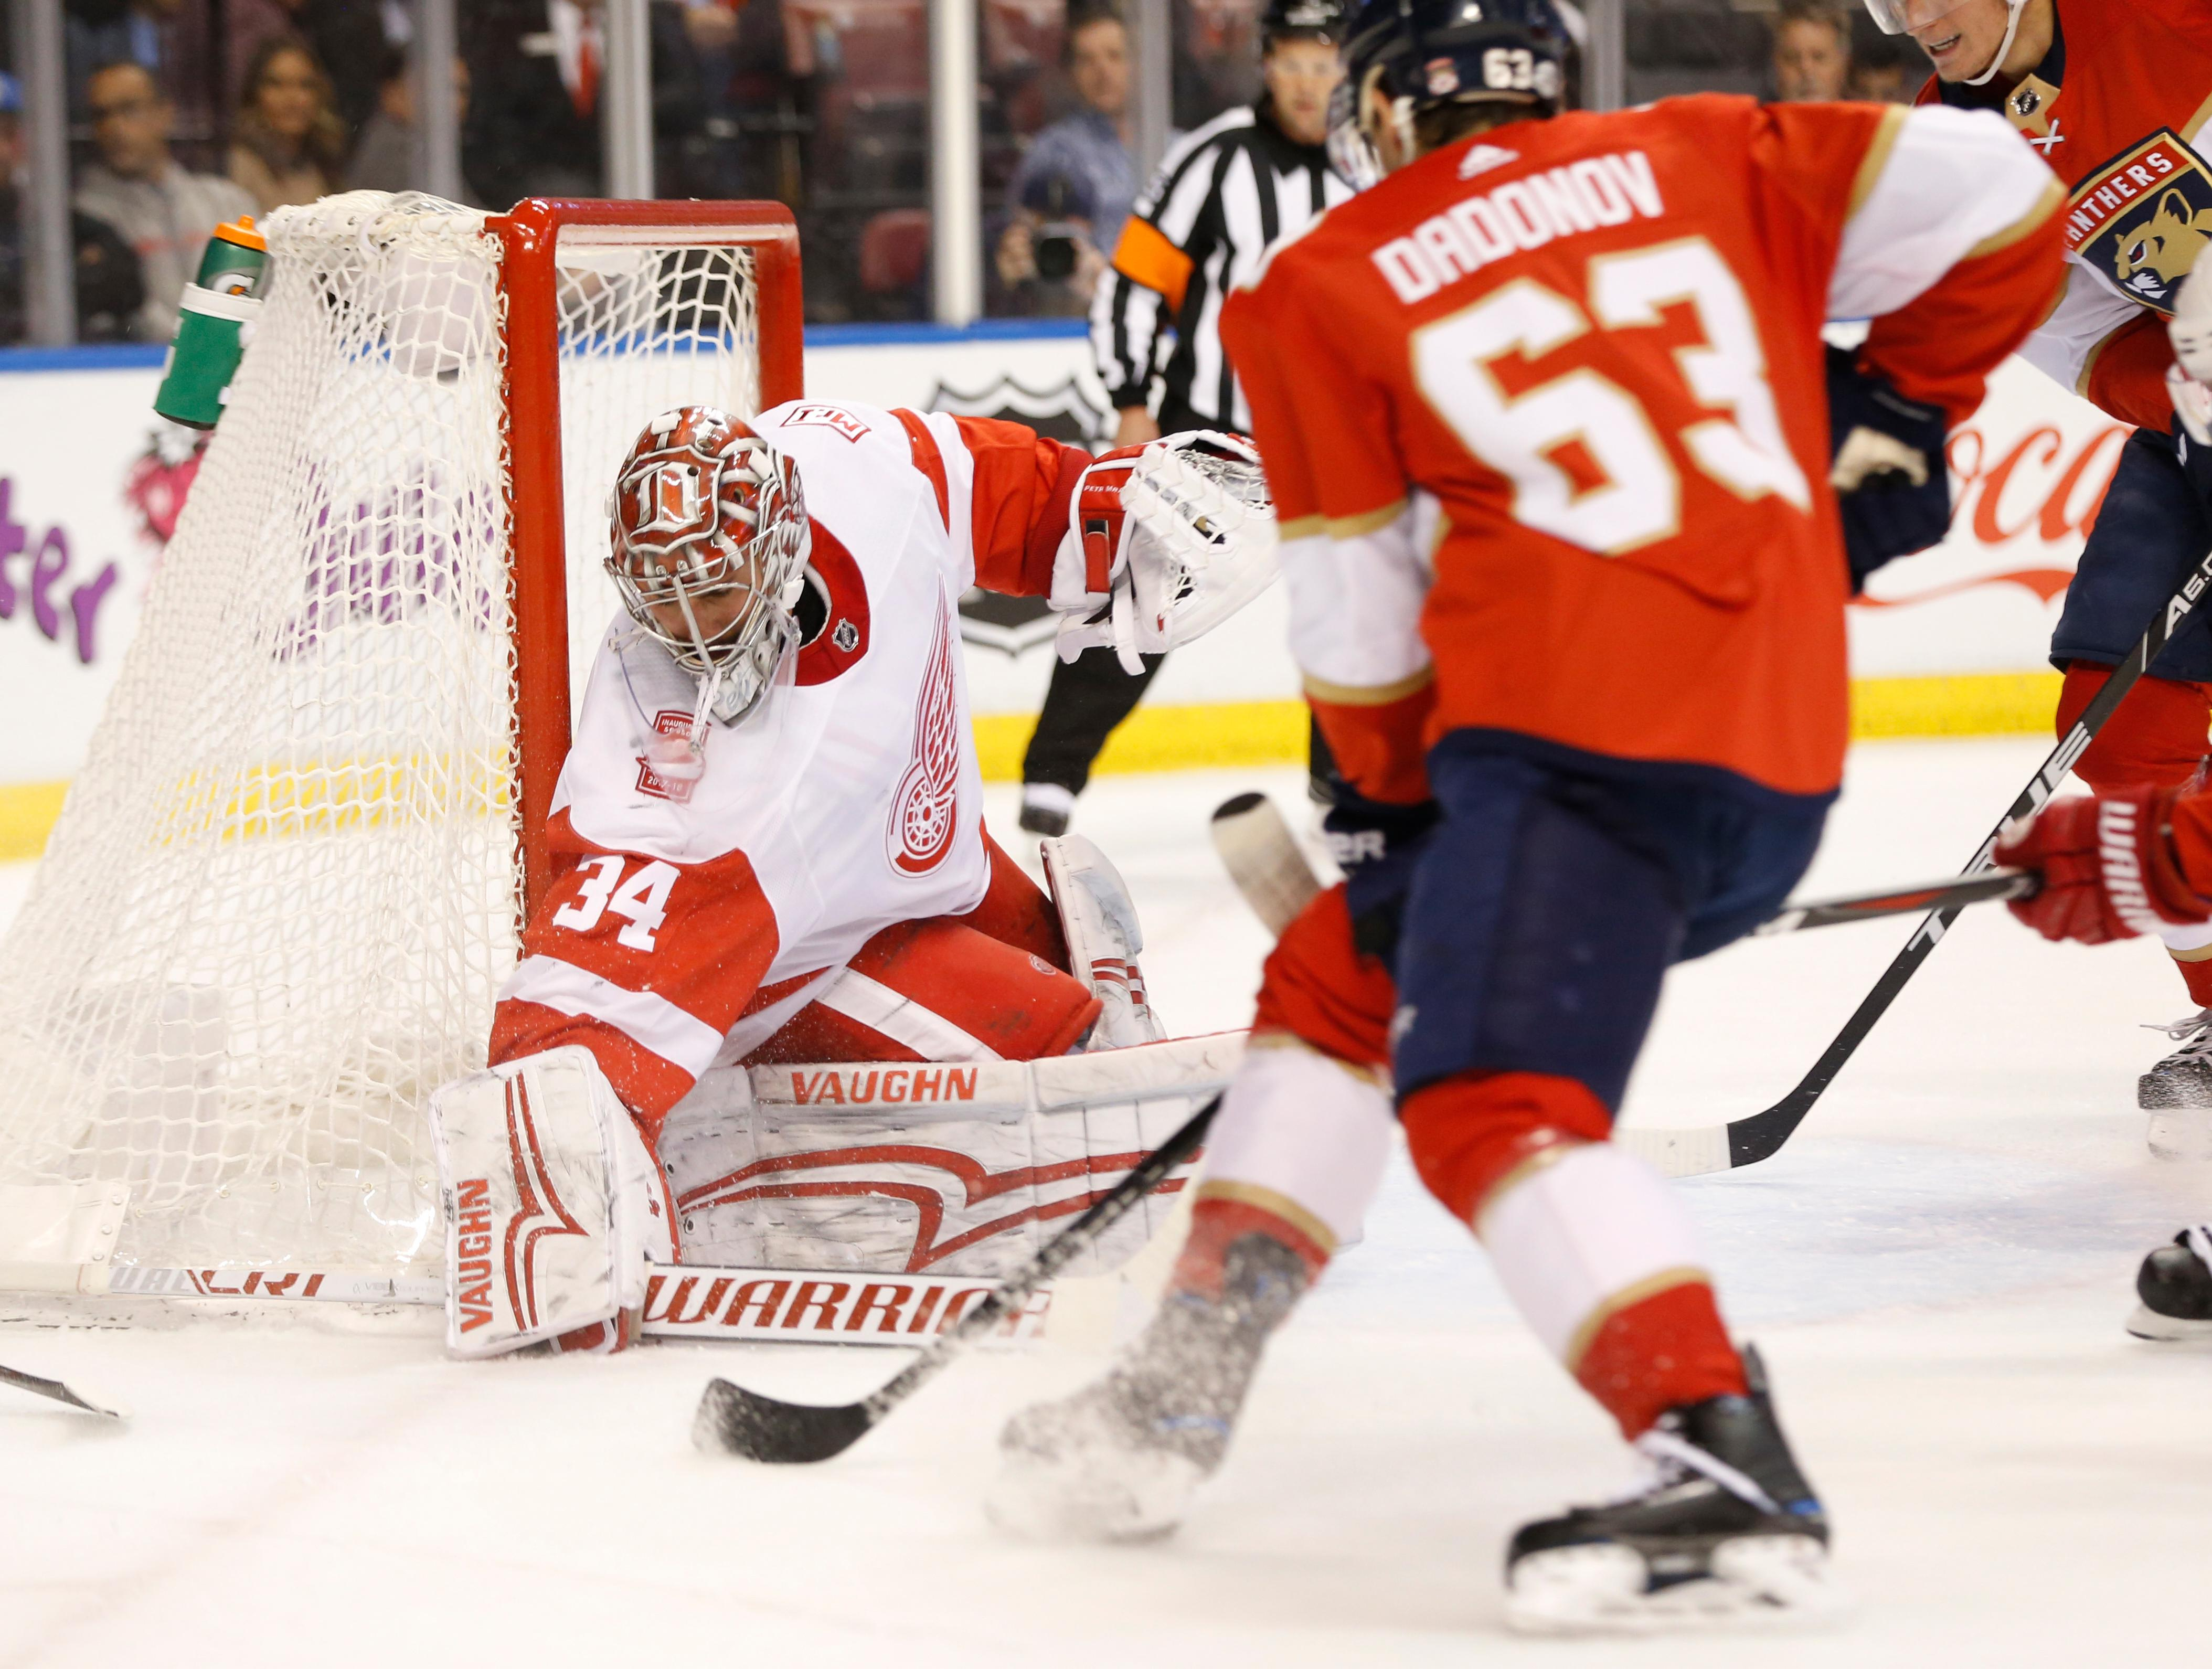 Florida Panthers right wing Evgenii Dadonov (63) attempts a shot at Detroit Red Wings goaltender Petr Mrazek (34) during the first period of an NHL hockey game, Saturday, Feb. 3, 2018 in Sunrise, Fla. (AP Photo/Wilfredo Lee)